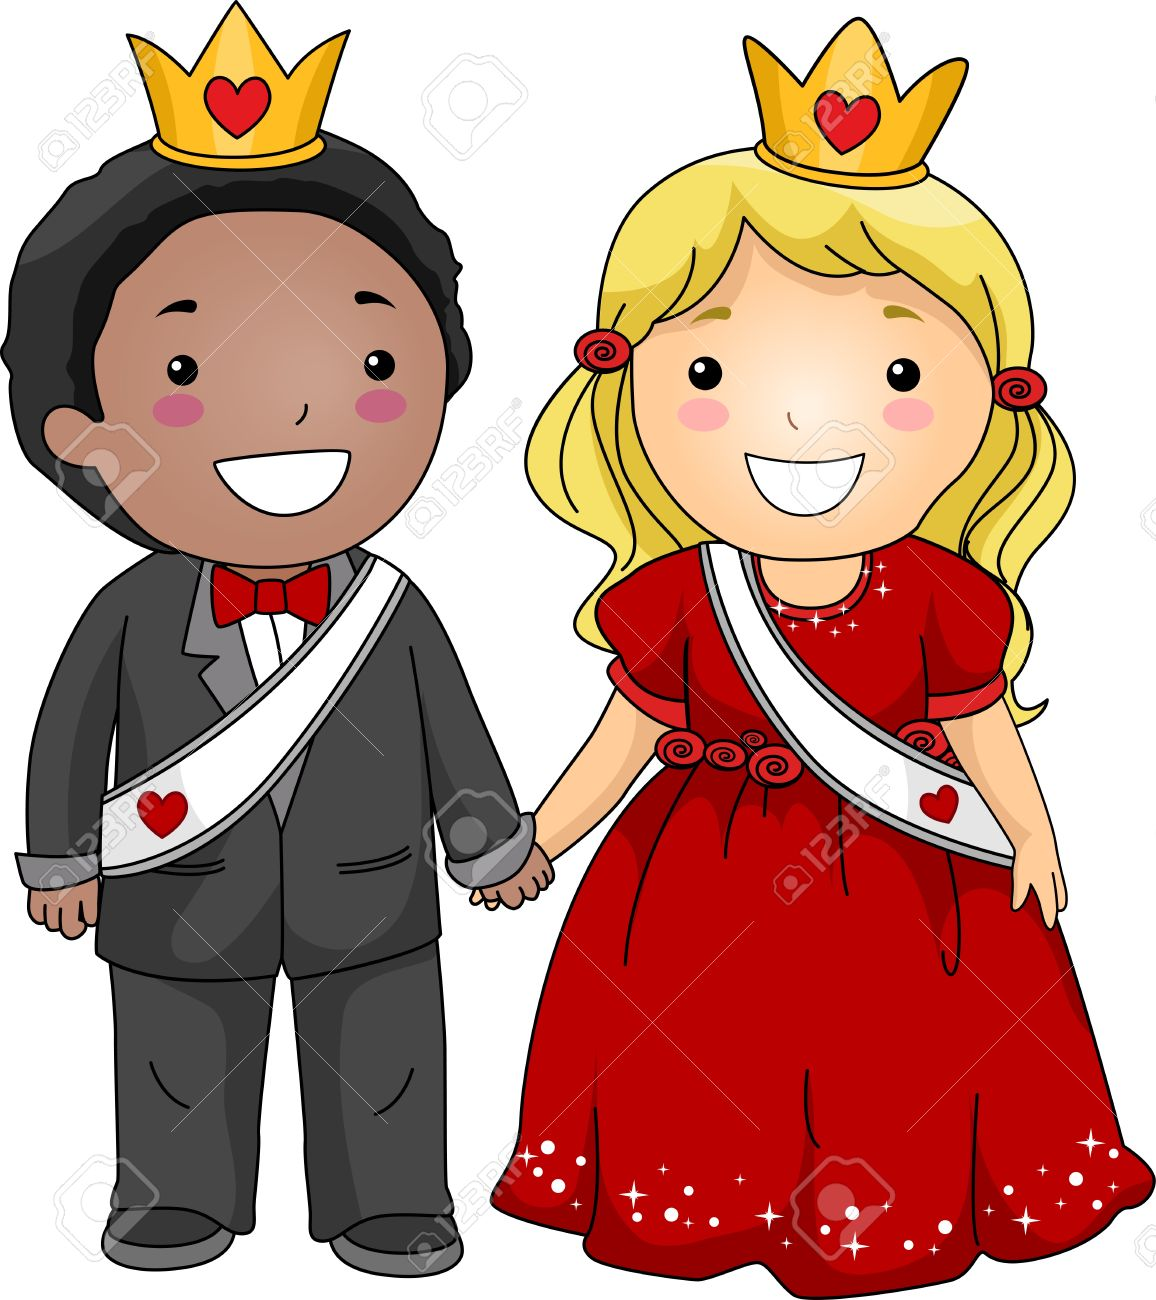 King and queen of hearts clipart svg transparent King and queen of hearts clipart - ClipartFest svg transparent